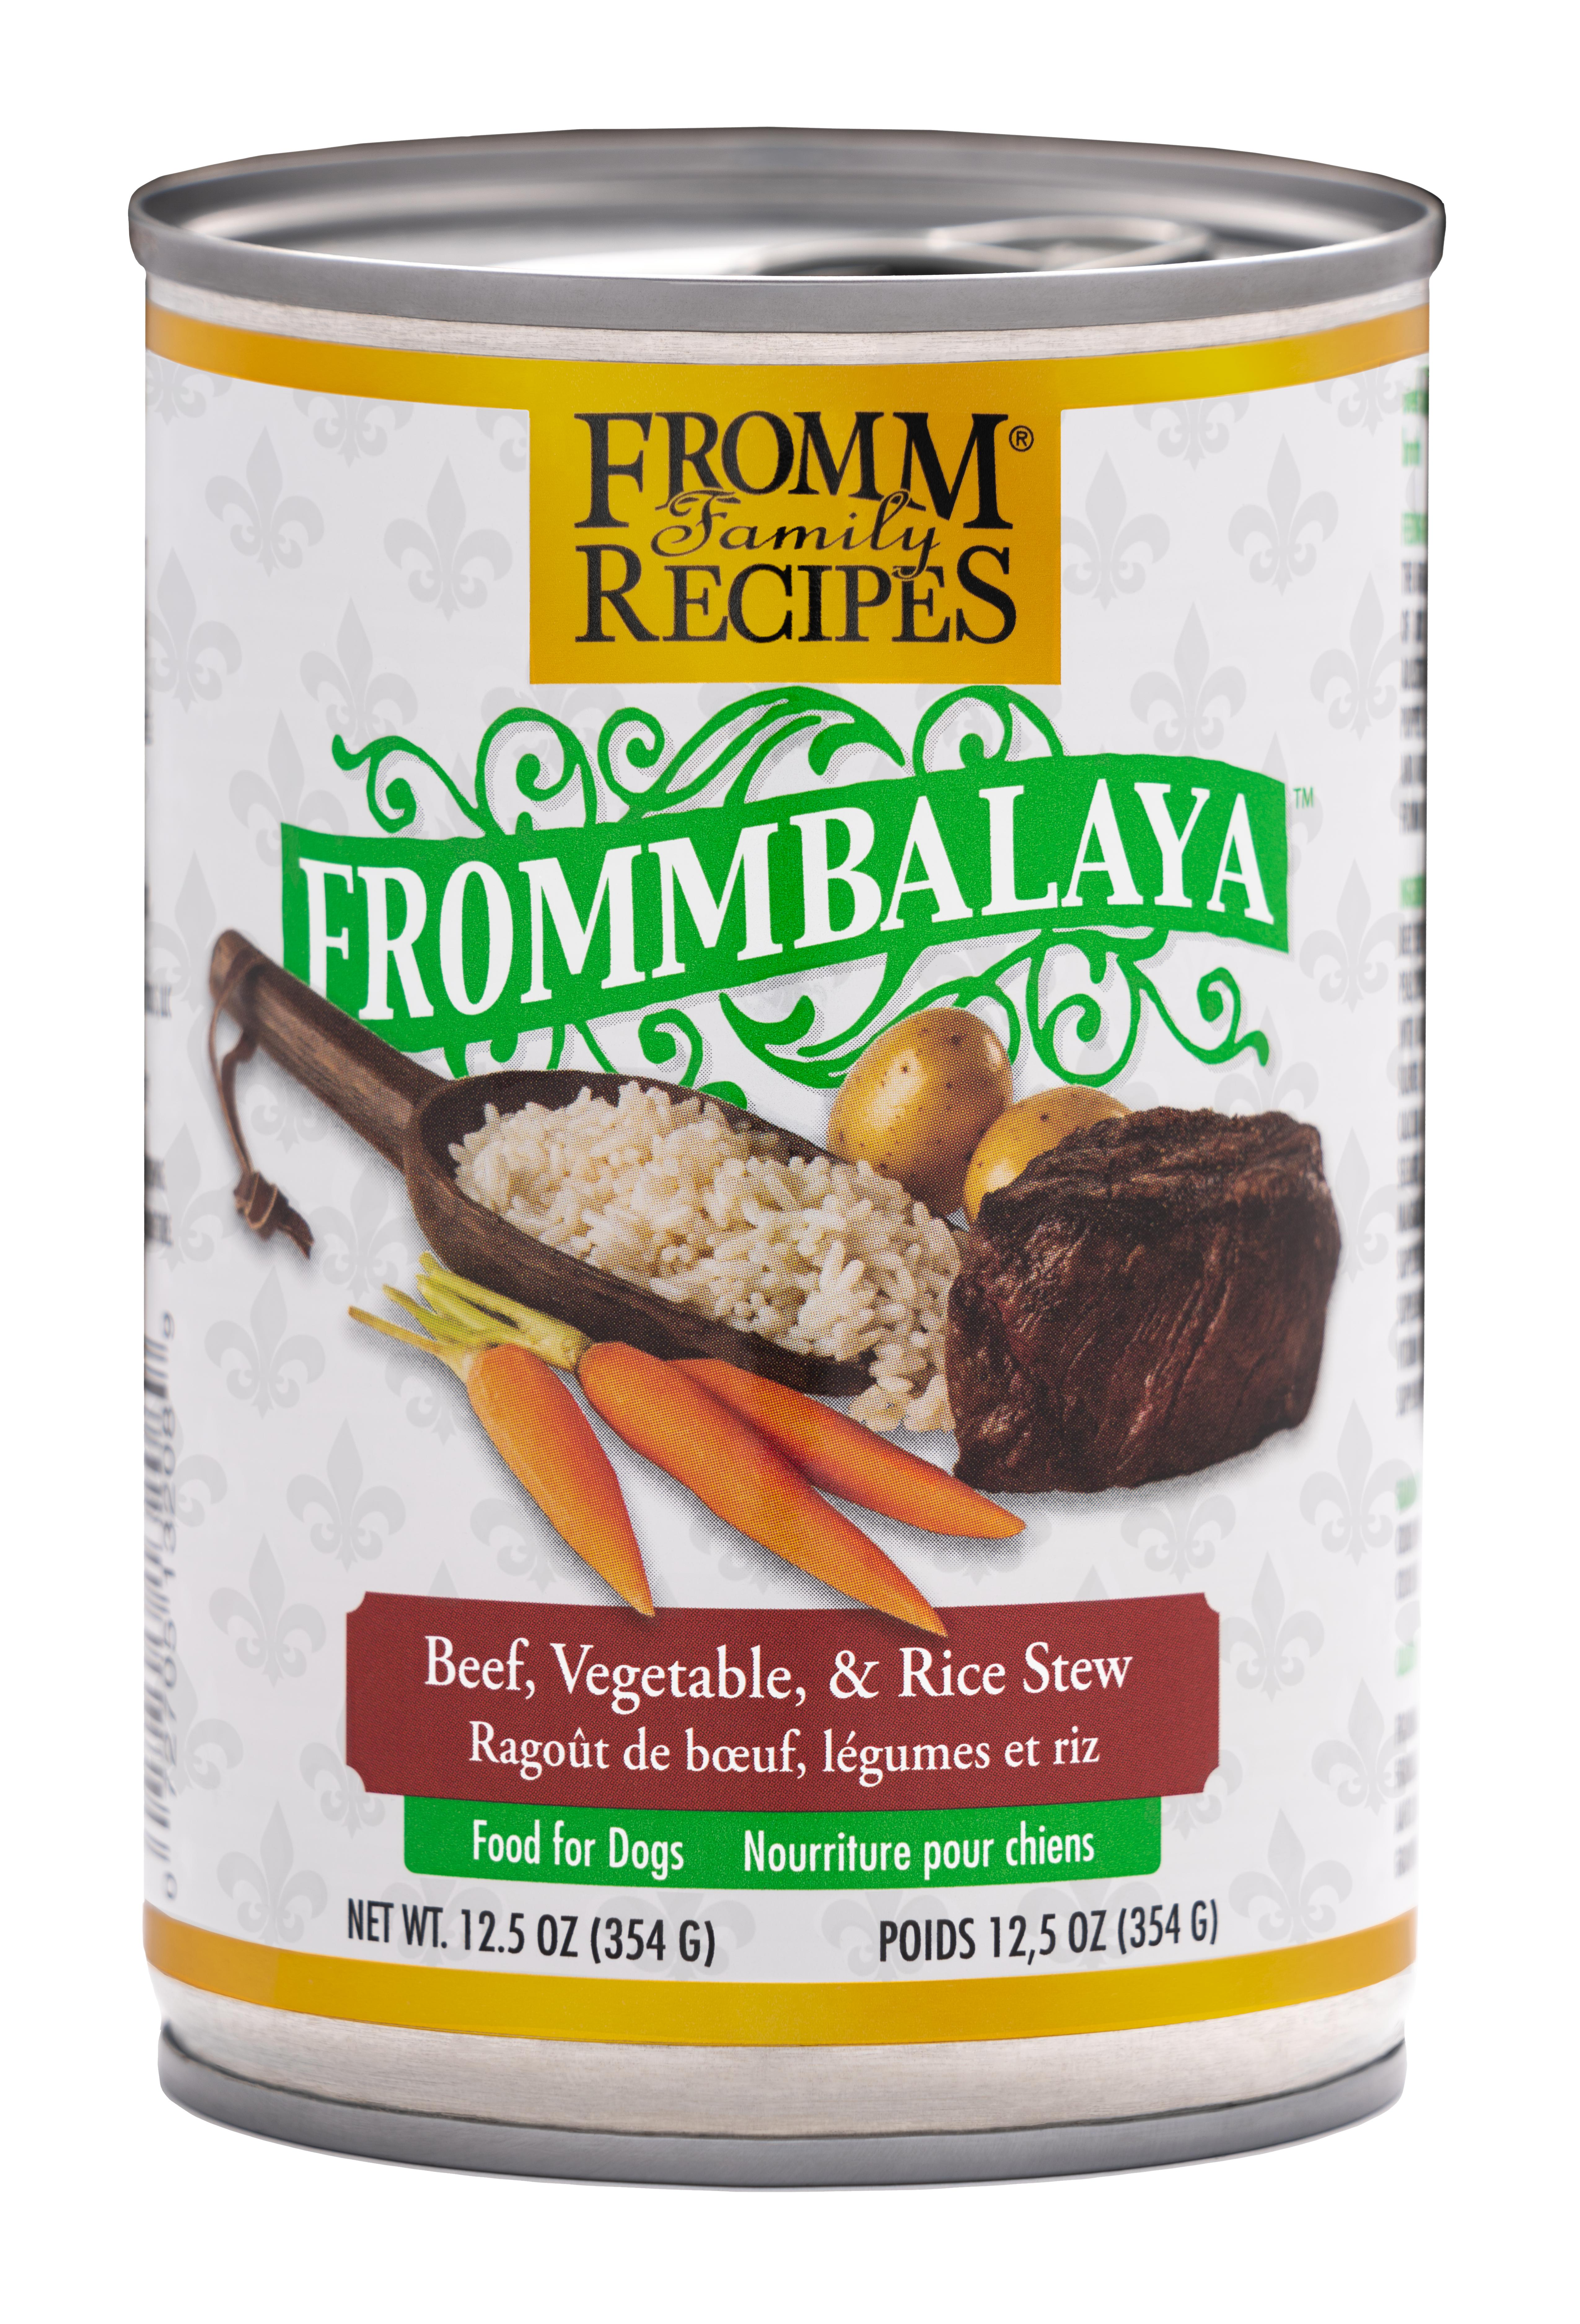 Fromm Family Recipes Frommbalaya Beef, Vegetable & Rice Stew Canned Dog Food, 12.5-oz